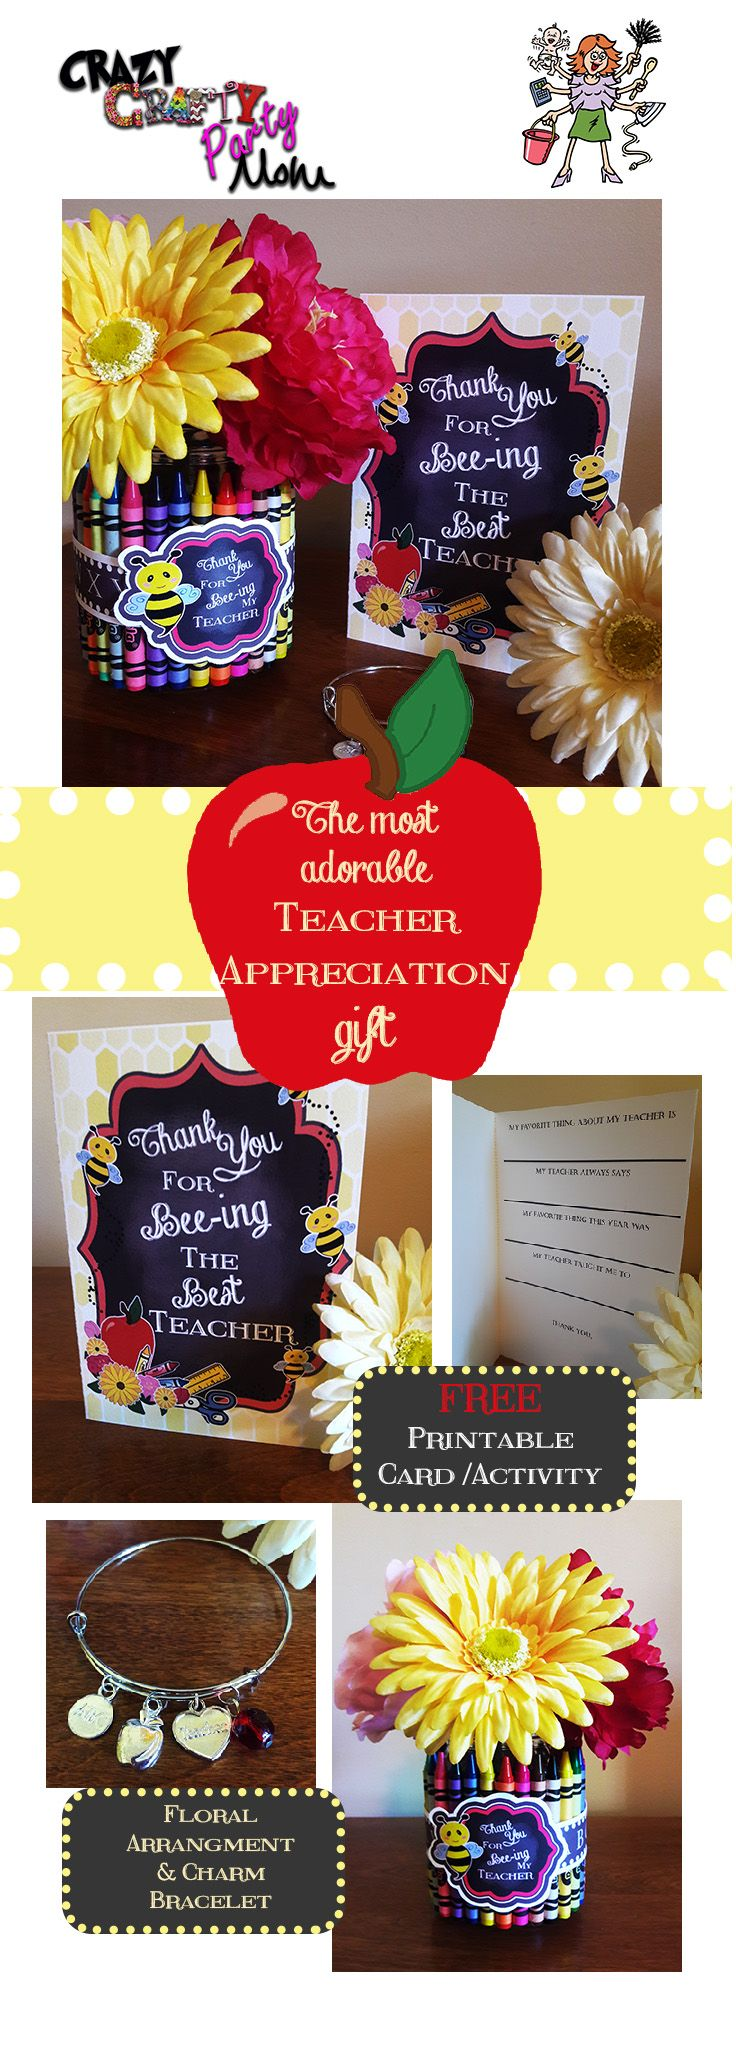 Teacher Appreciation Gift, Teacher Thank You Gift, Teacher Flowers, Teacher Thank You Card, Teacher Charm Bracelet.